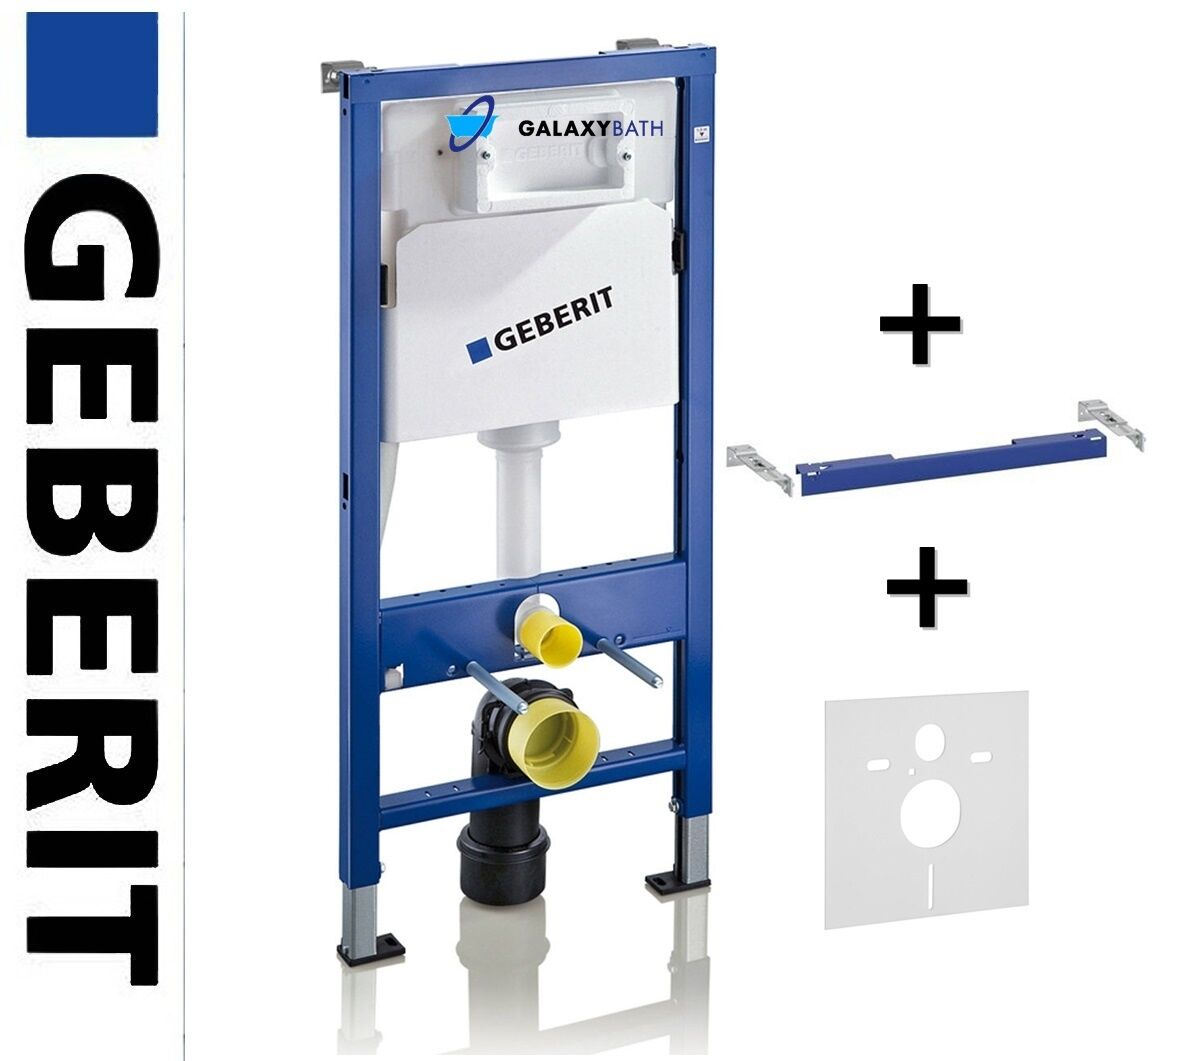 Geberit duofix basic wall hung wc toilet frame up100 delta for Geberit toilet system